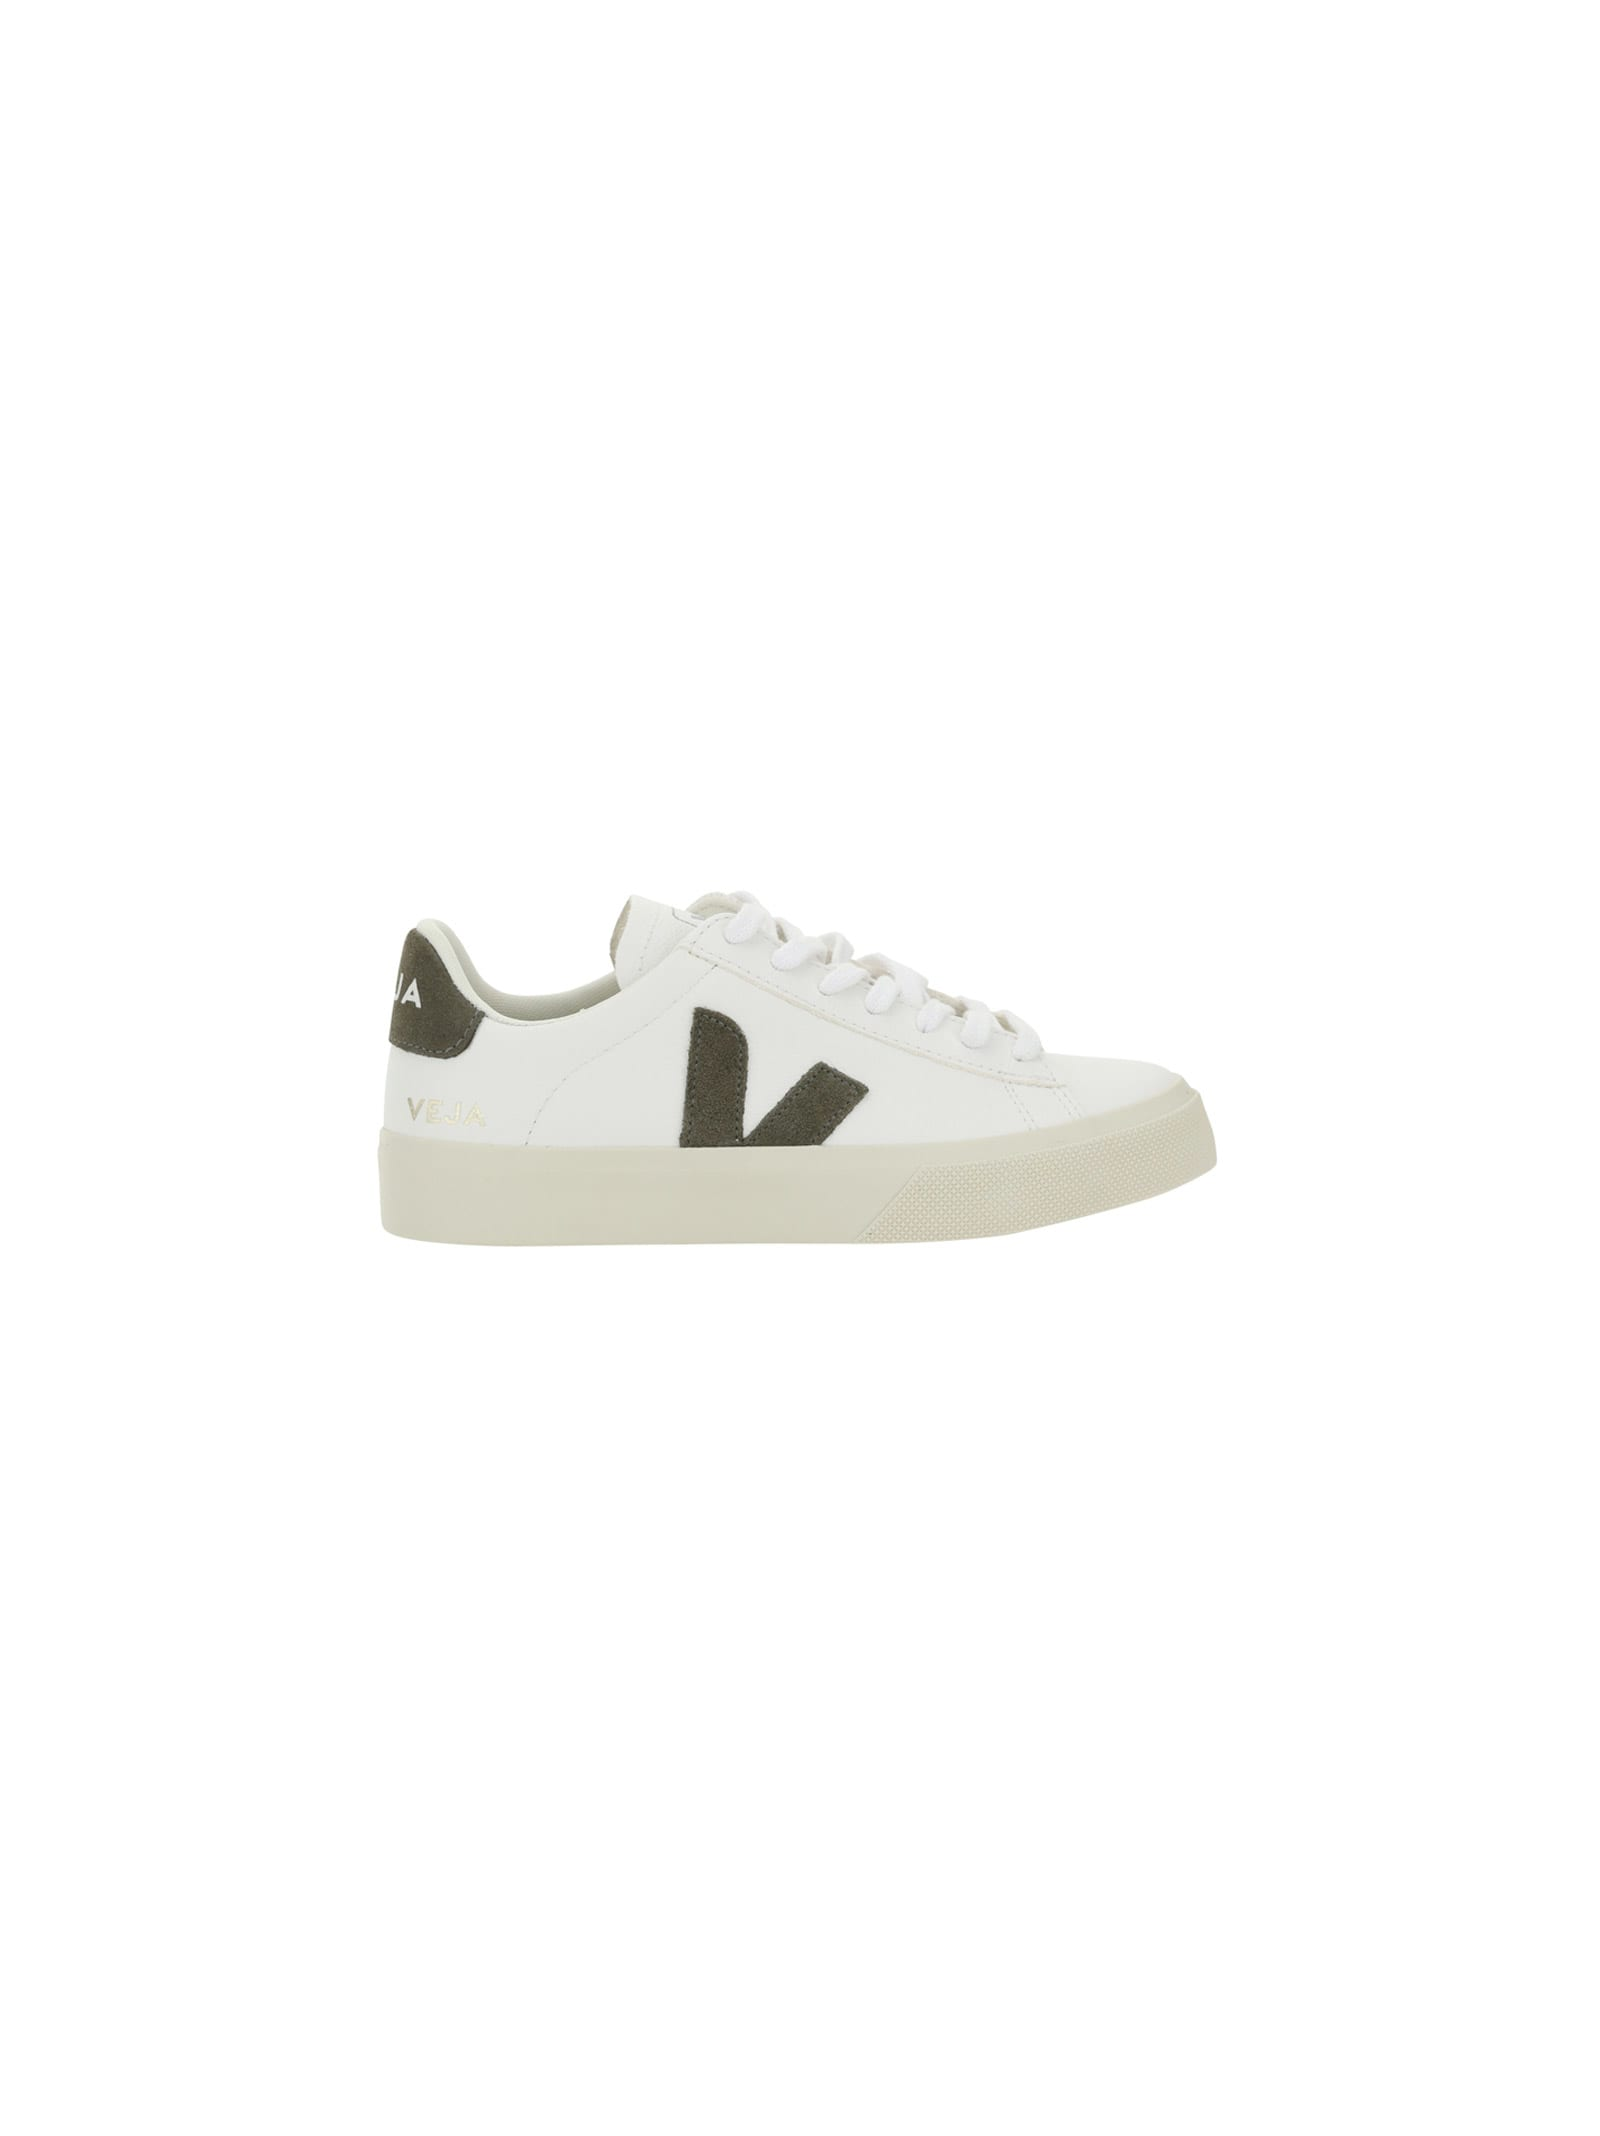 Veja Leathers CAMPO SNEAKERS